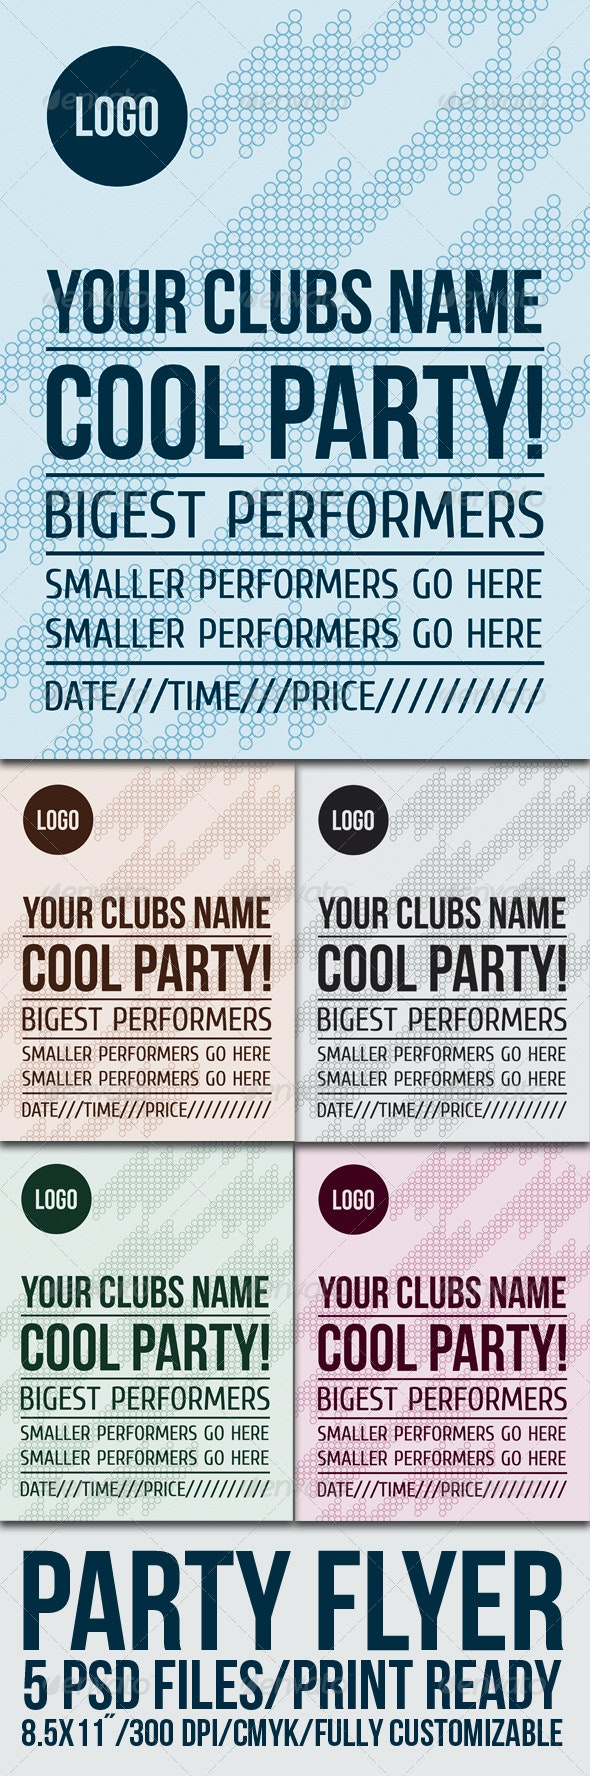 Party Flyer VOL.2 - Clubs & Parties Events